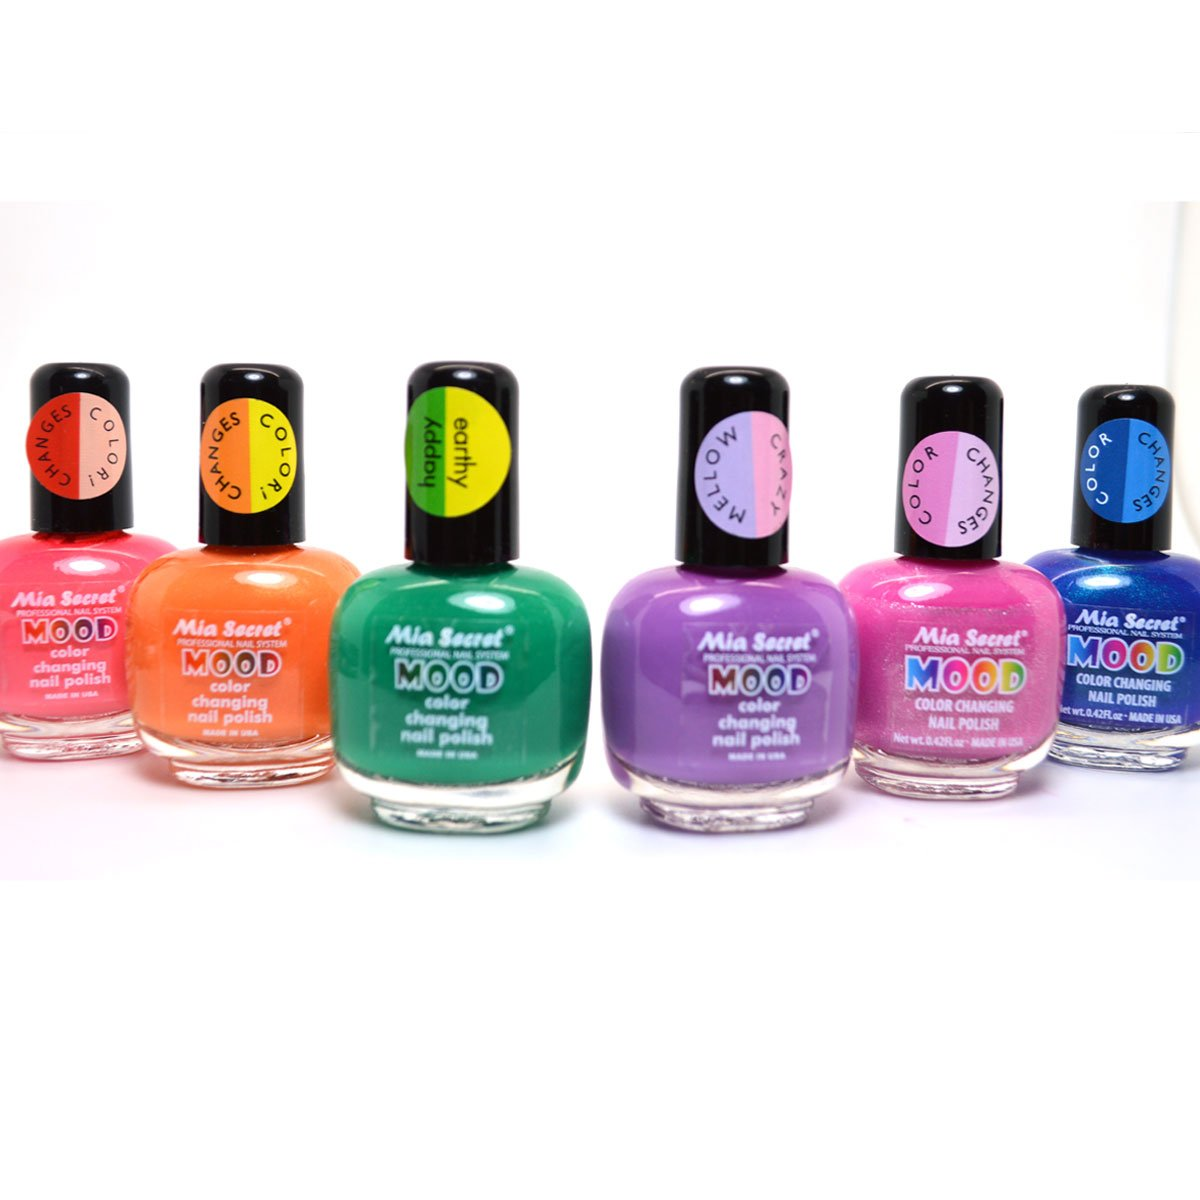 Amazon.com : 6 FULL MIA SECRET MOOD COLOR CHANGING NAIL POLISH ...